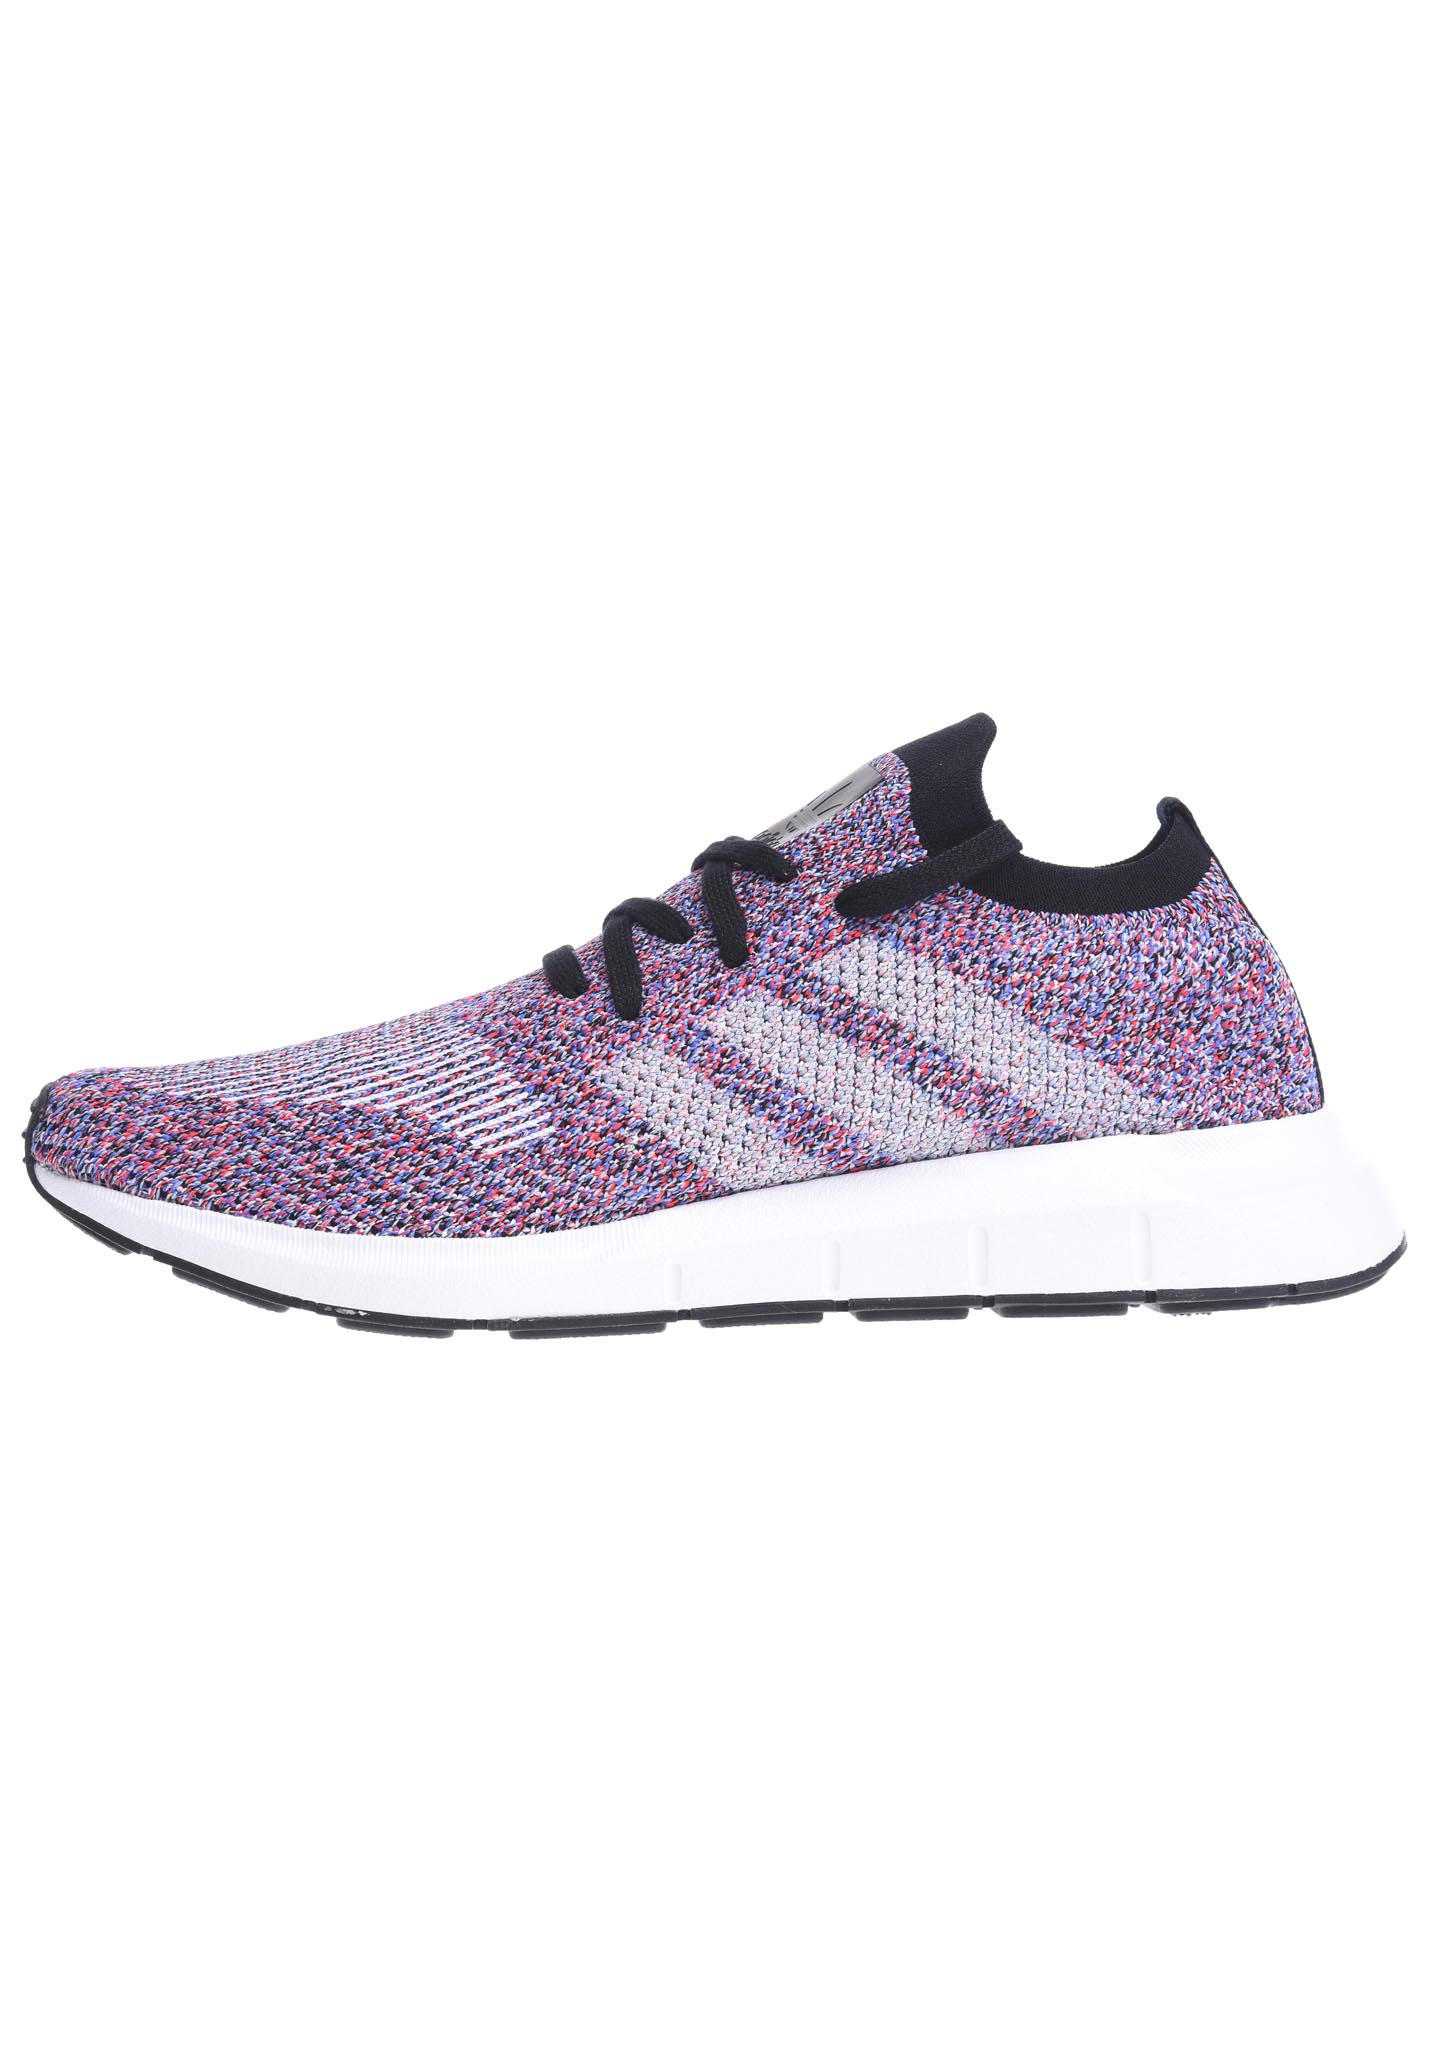 541bc925df02e ADIDAS ORIGINALS Swift Run PK - Sneakers - Purple - Planet Sports